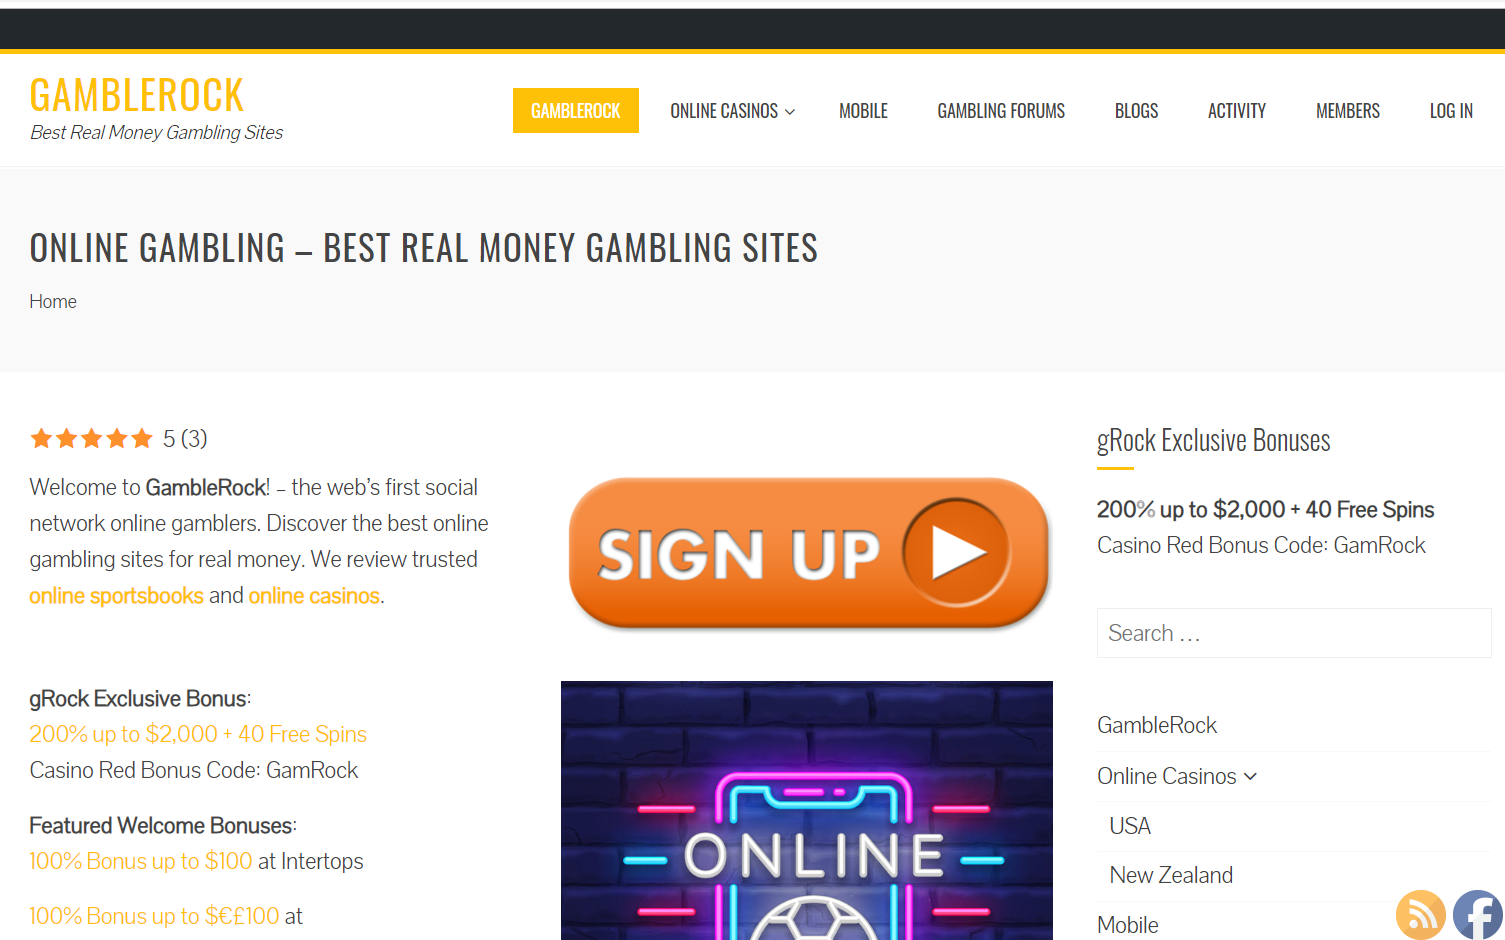 Find The Best Online Gambling Sites Of 2019 At Gamblerock Com By